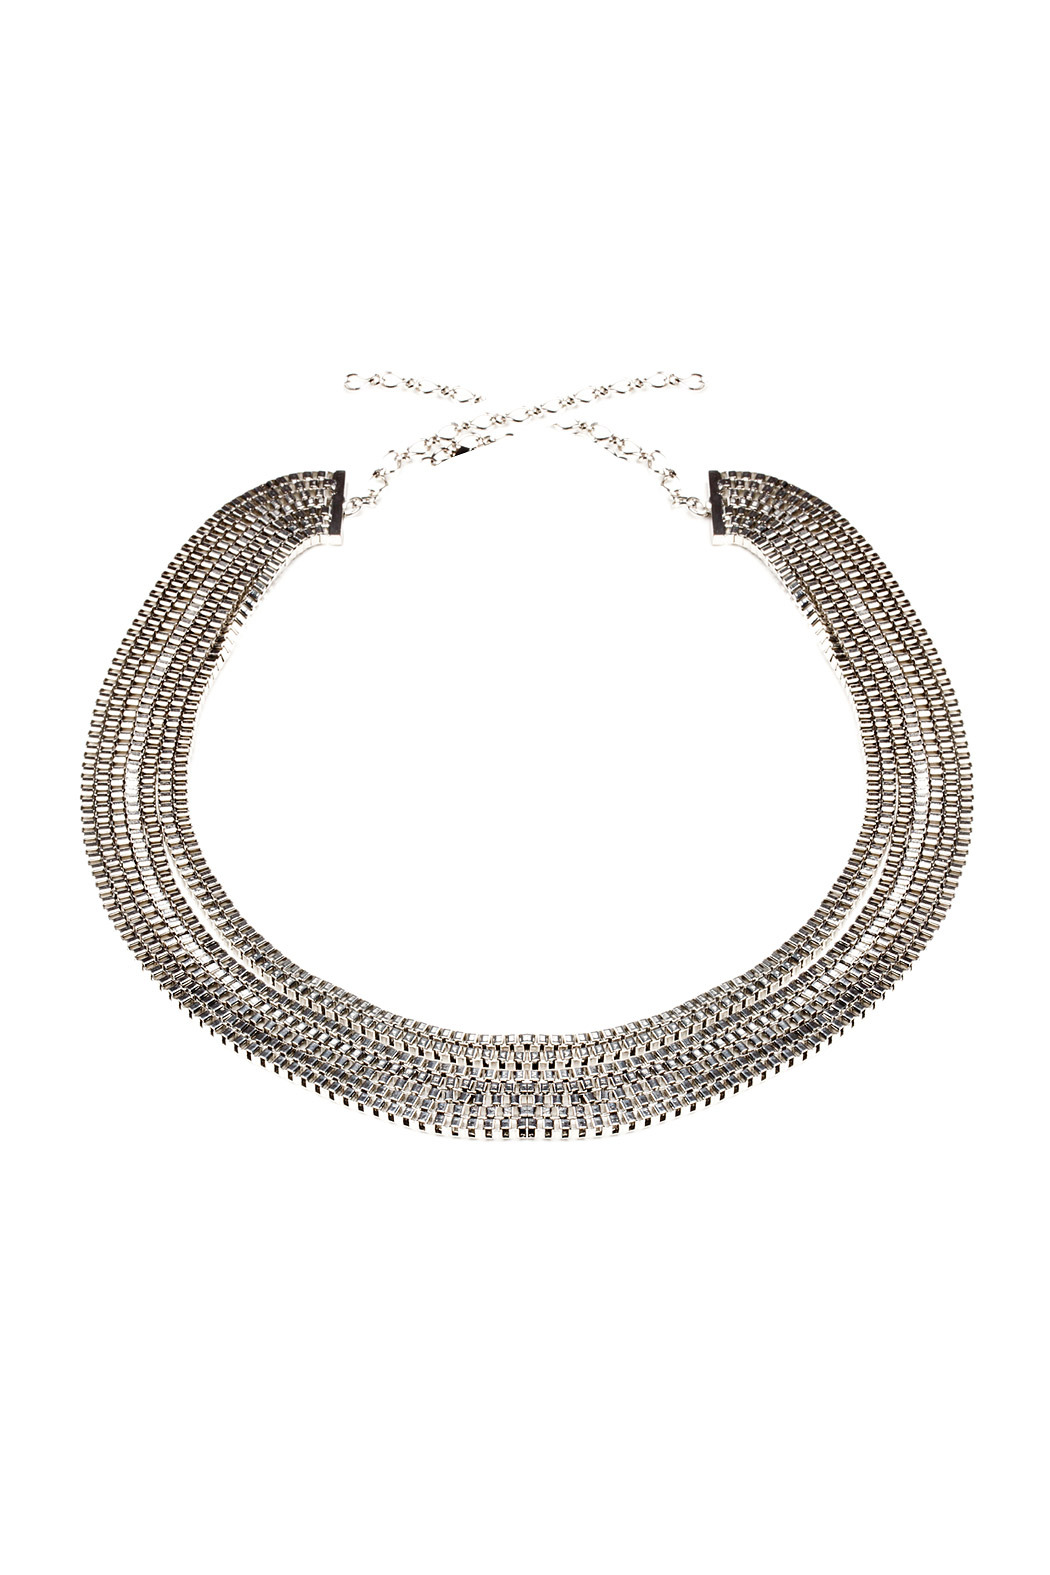 MAI Collection Multi-Chain Necklace - Main Image